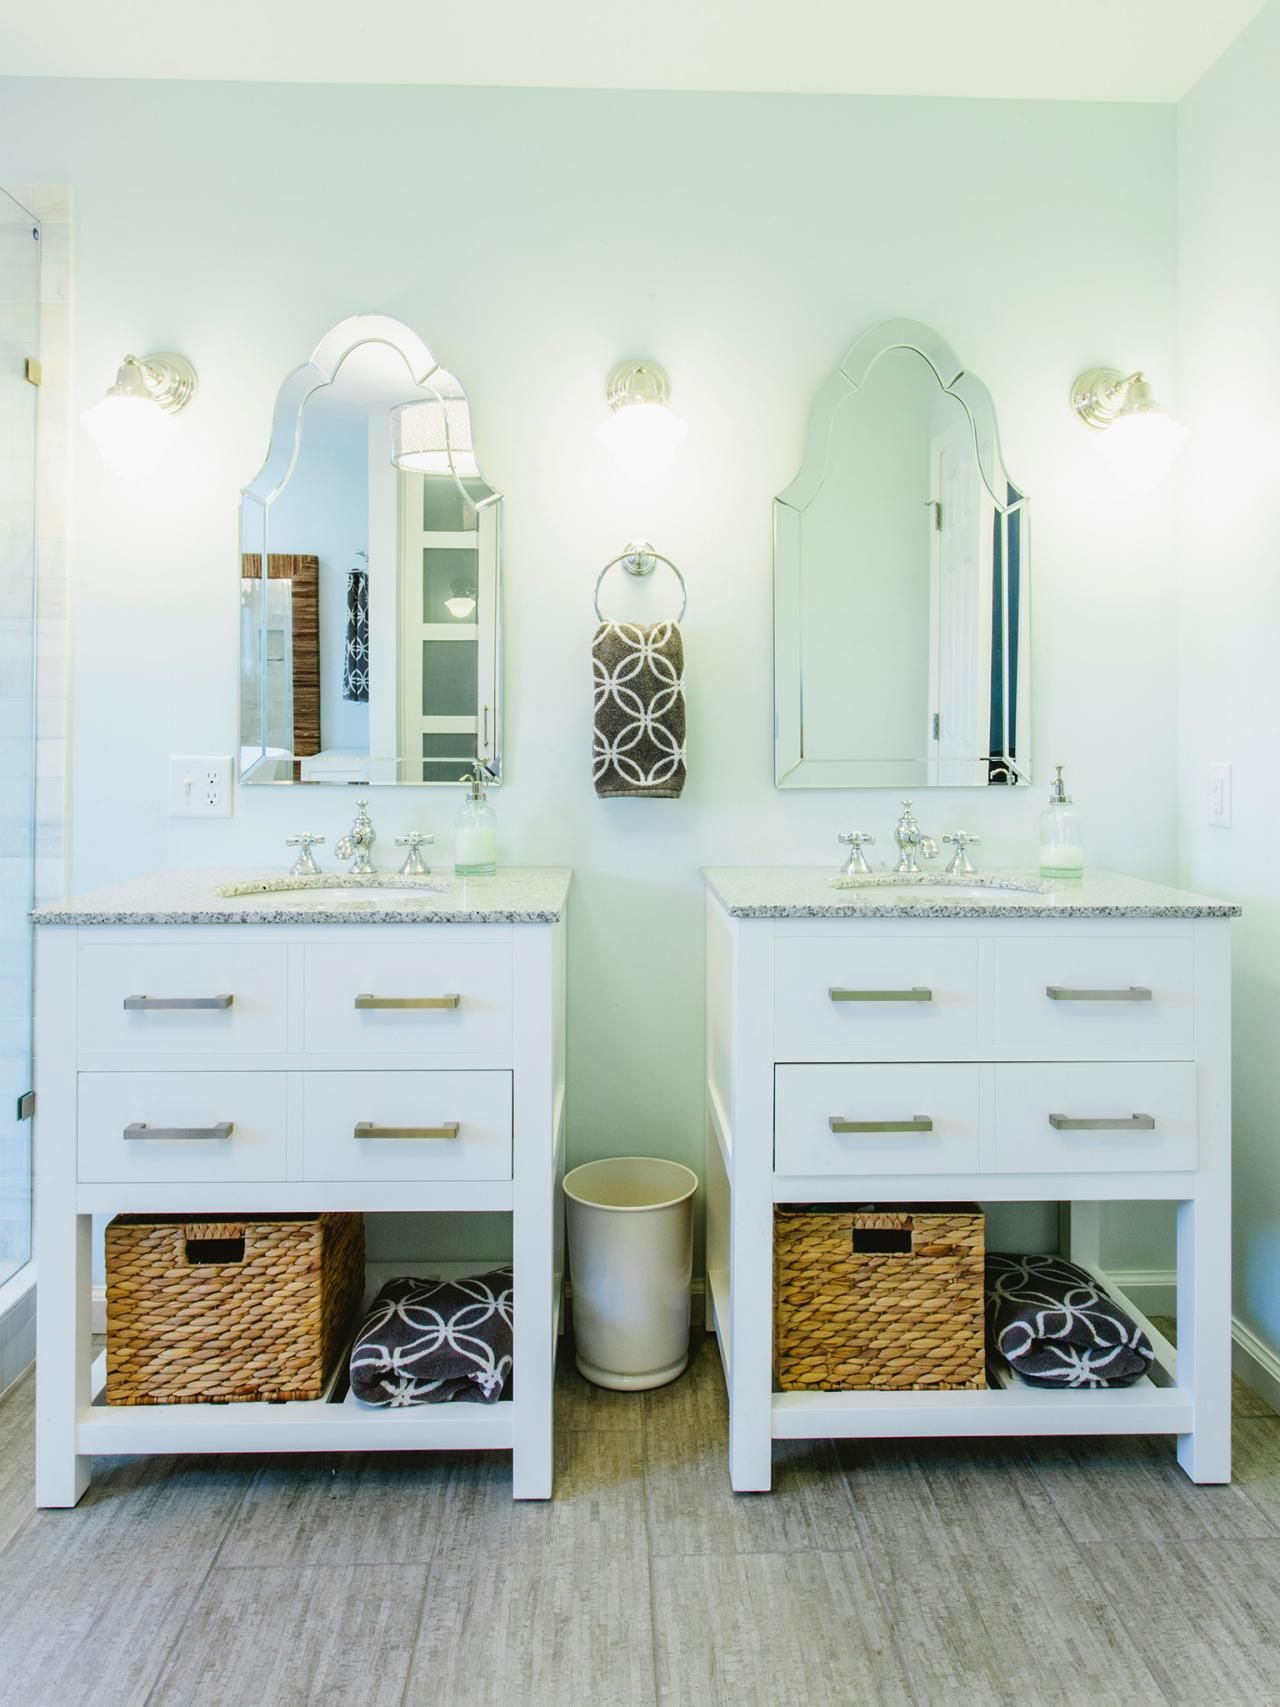 Two single vanities were used to give the owners a double vanity ...